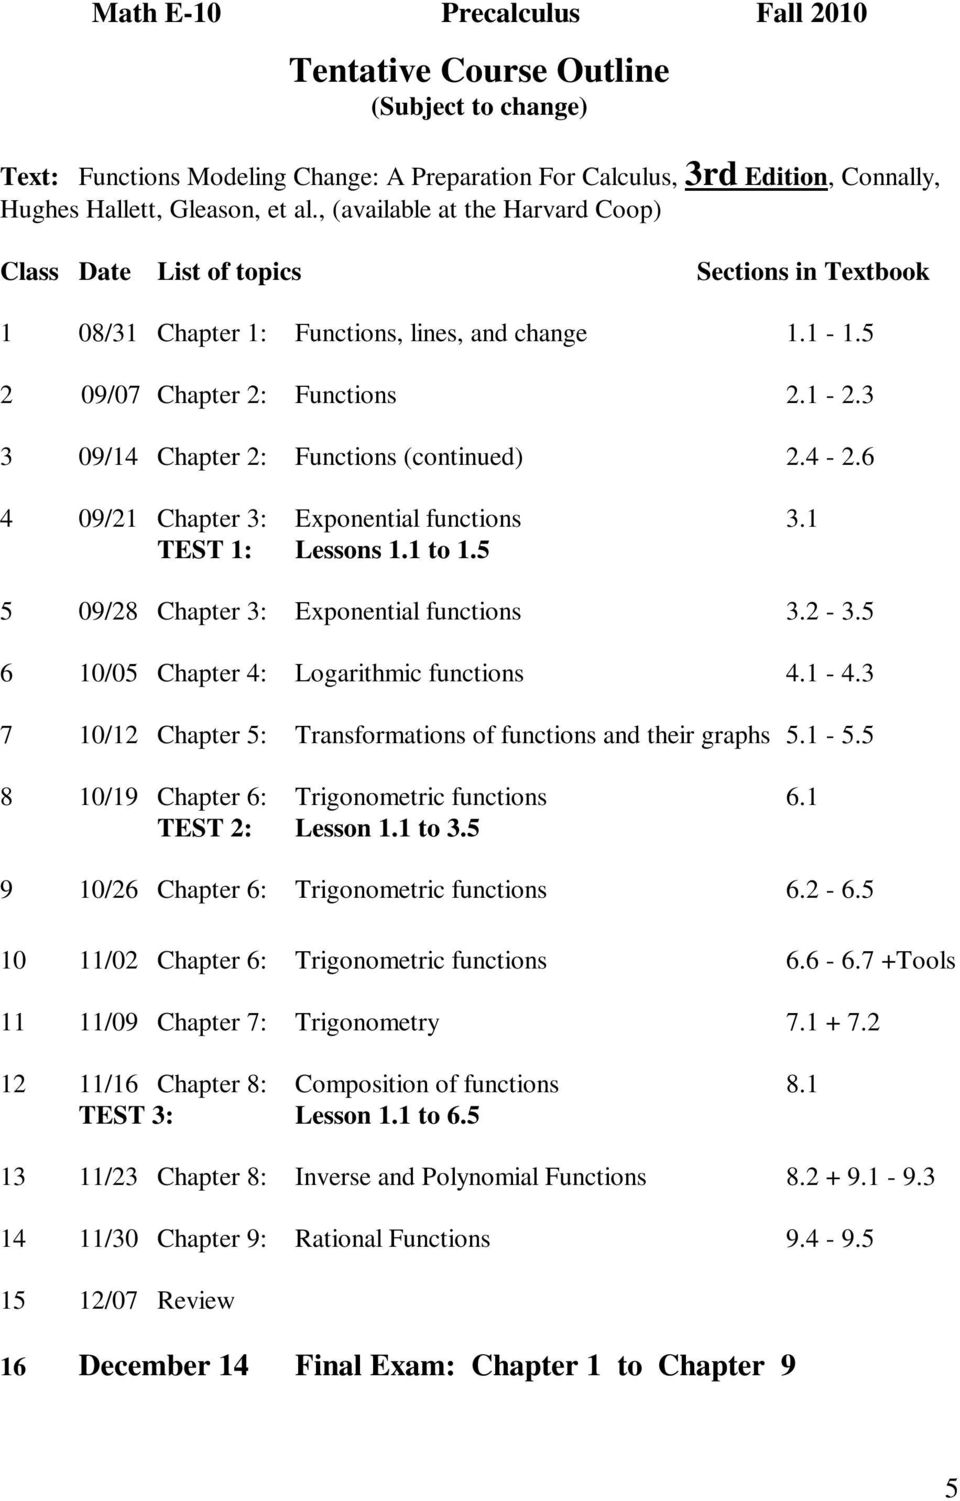 3 3 09/14 Chapter 2: Functions (continued) 2.4-2.6 4 09/21 Chapter 3: Exponential functions 3.1 TEST 1: Lessons 1.1 to 1.5 5 09/28 Chapter 3: Exponential functions 3.2-3.